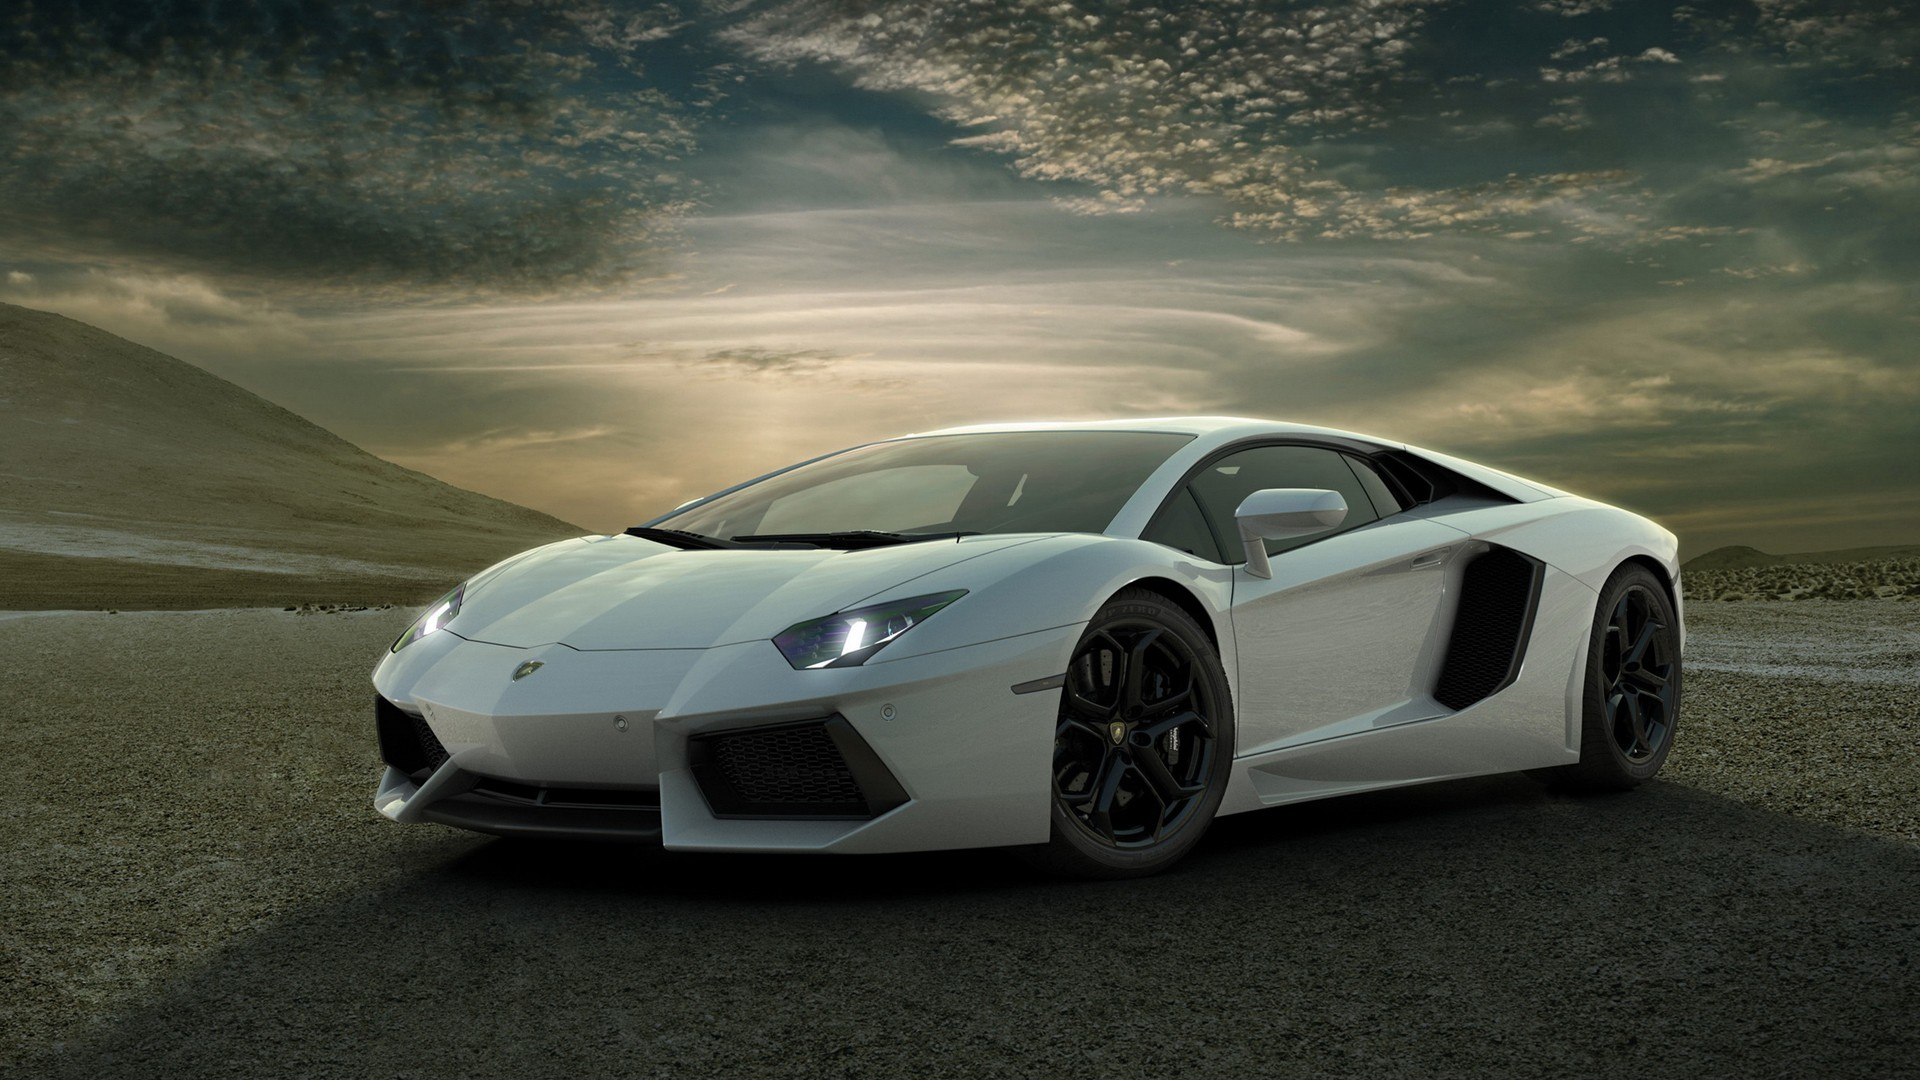 Download Lamborghini Aventador Images HD Wallpaper Download 1920x1080